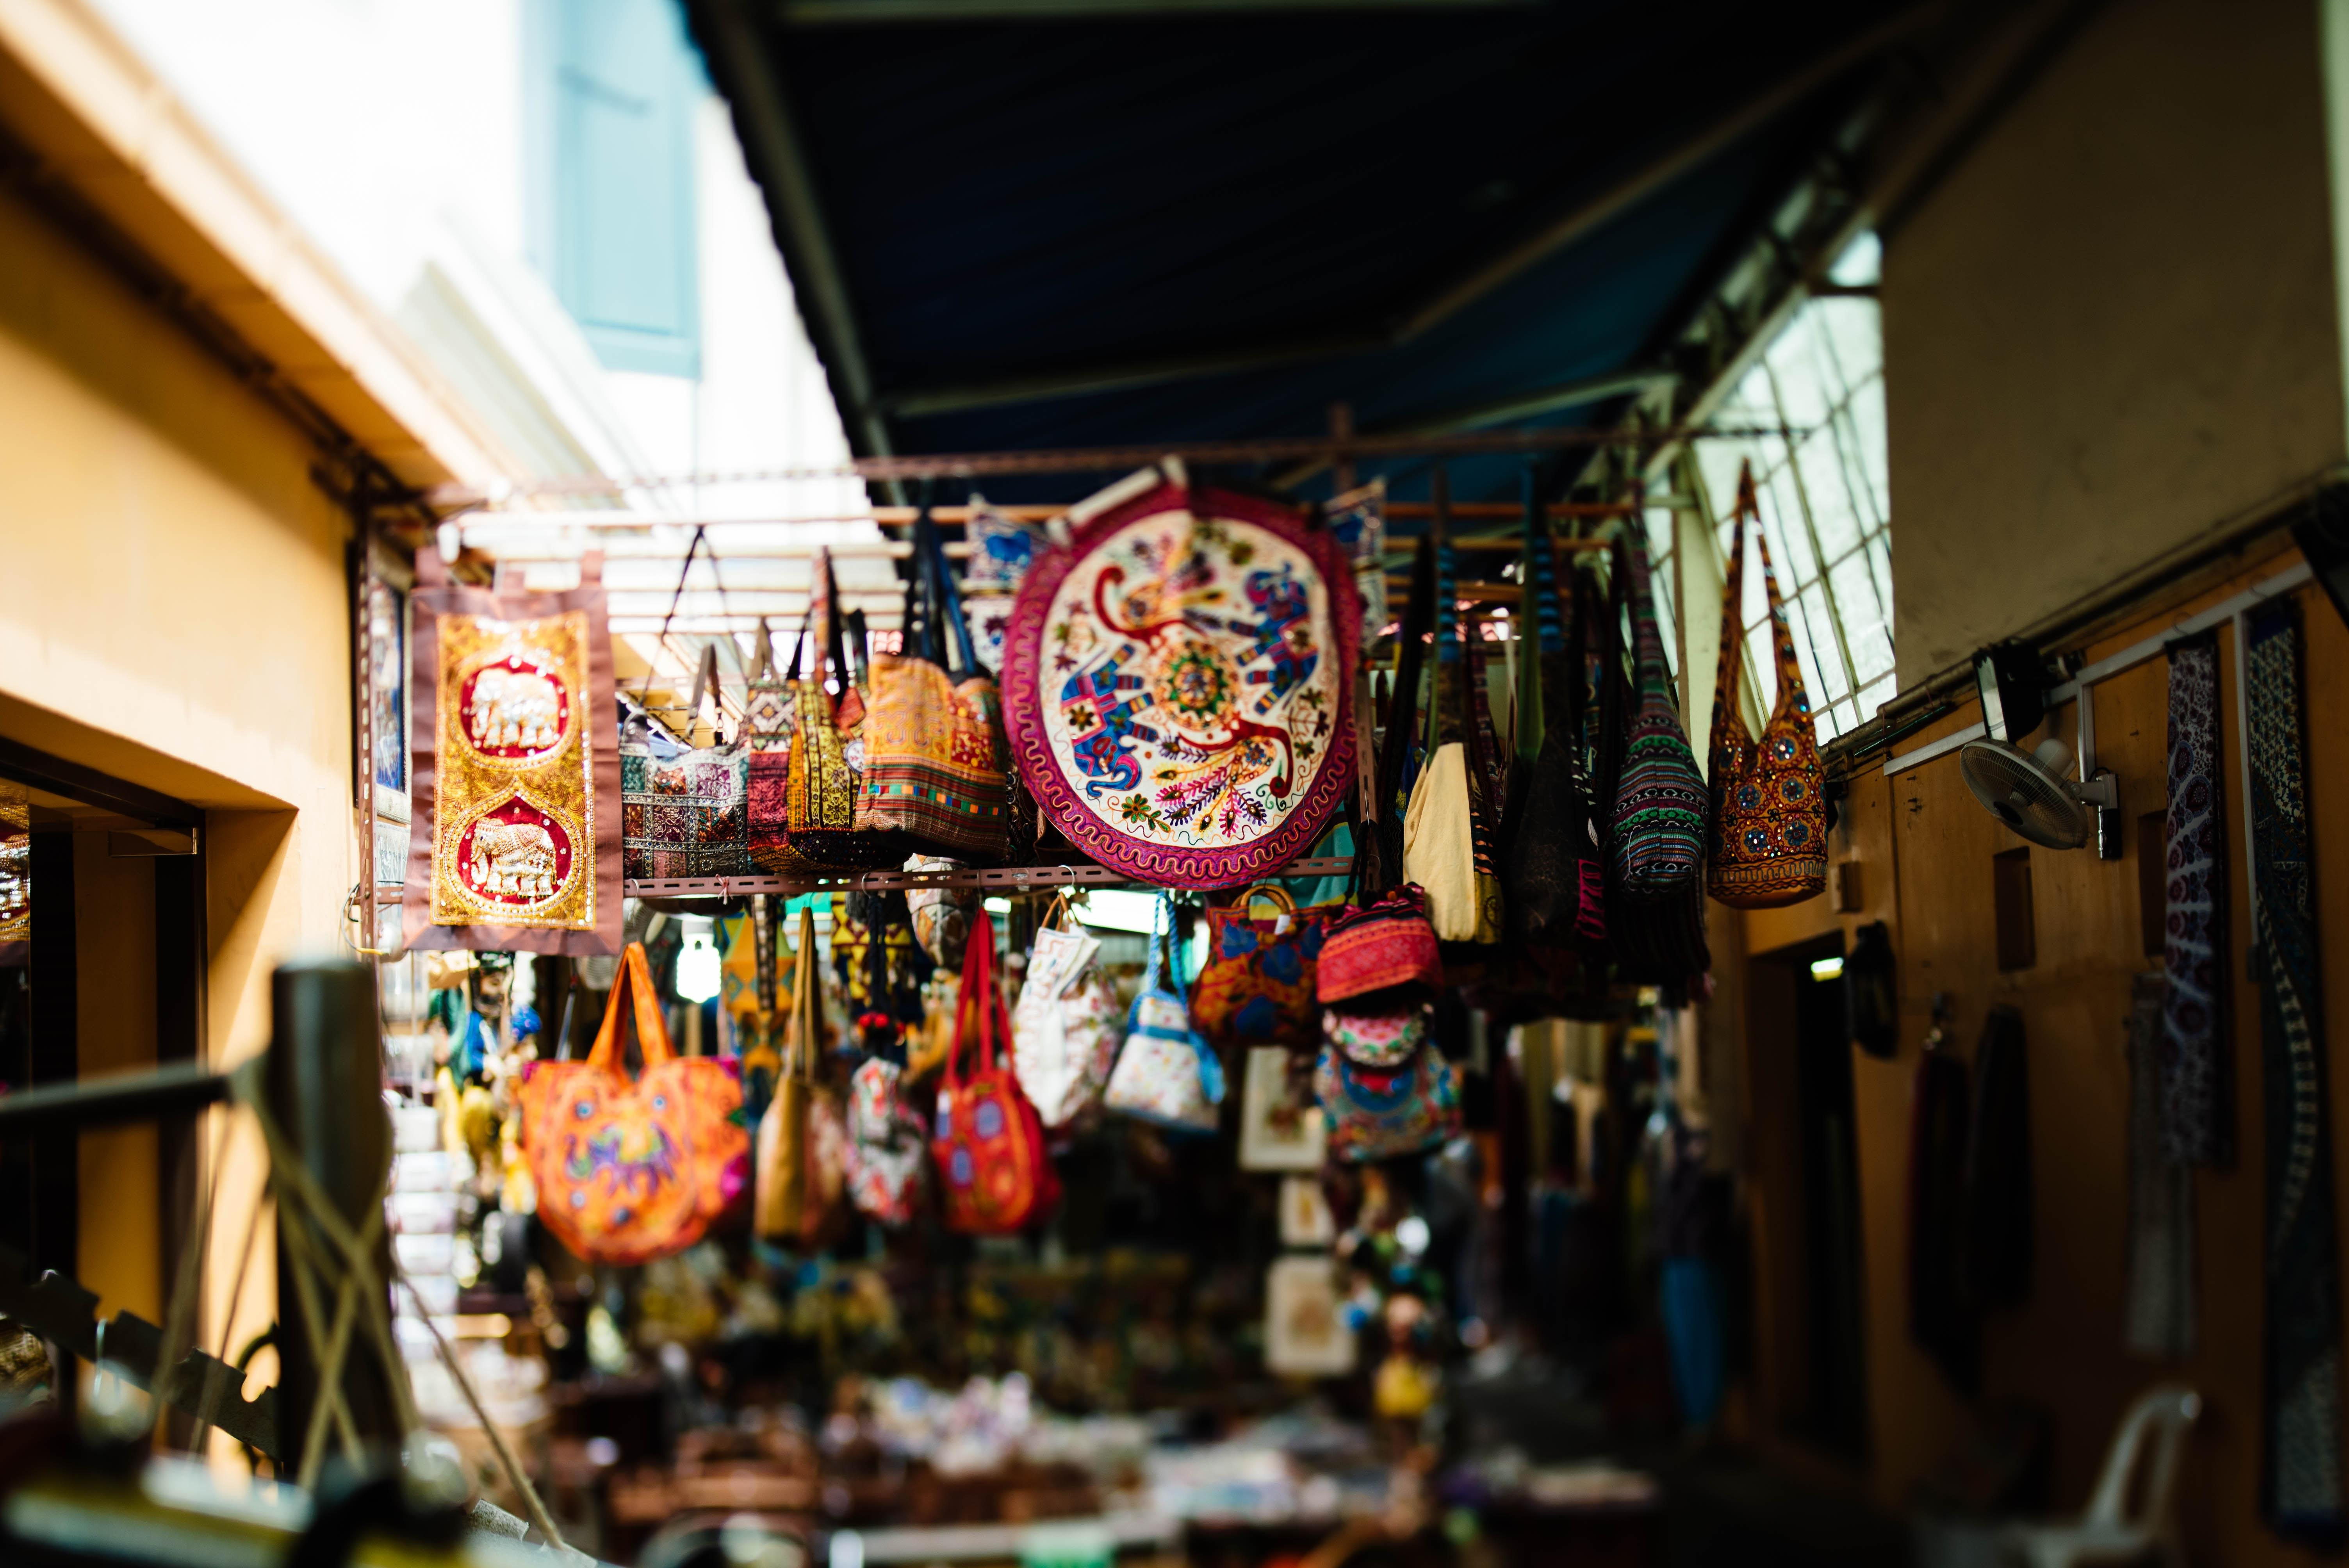 A first timer's guide to haggling